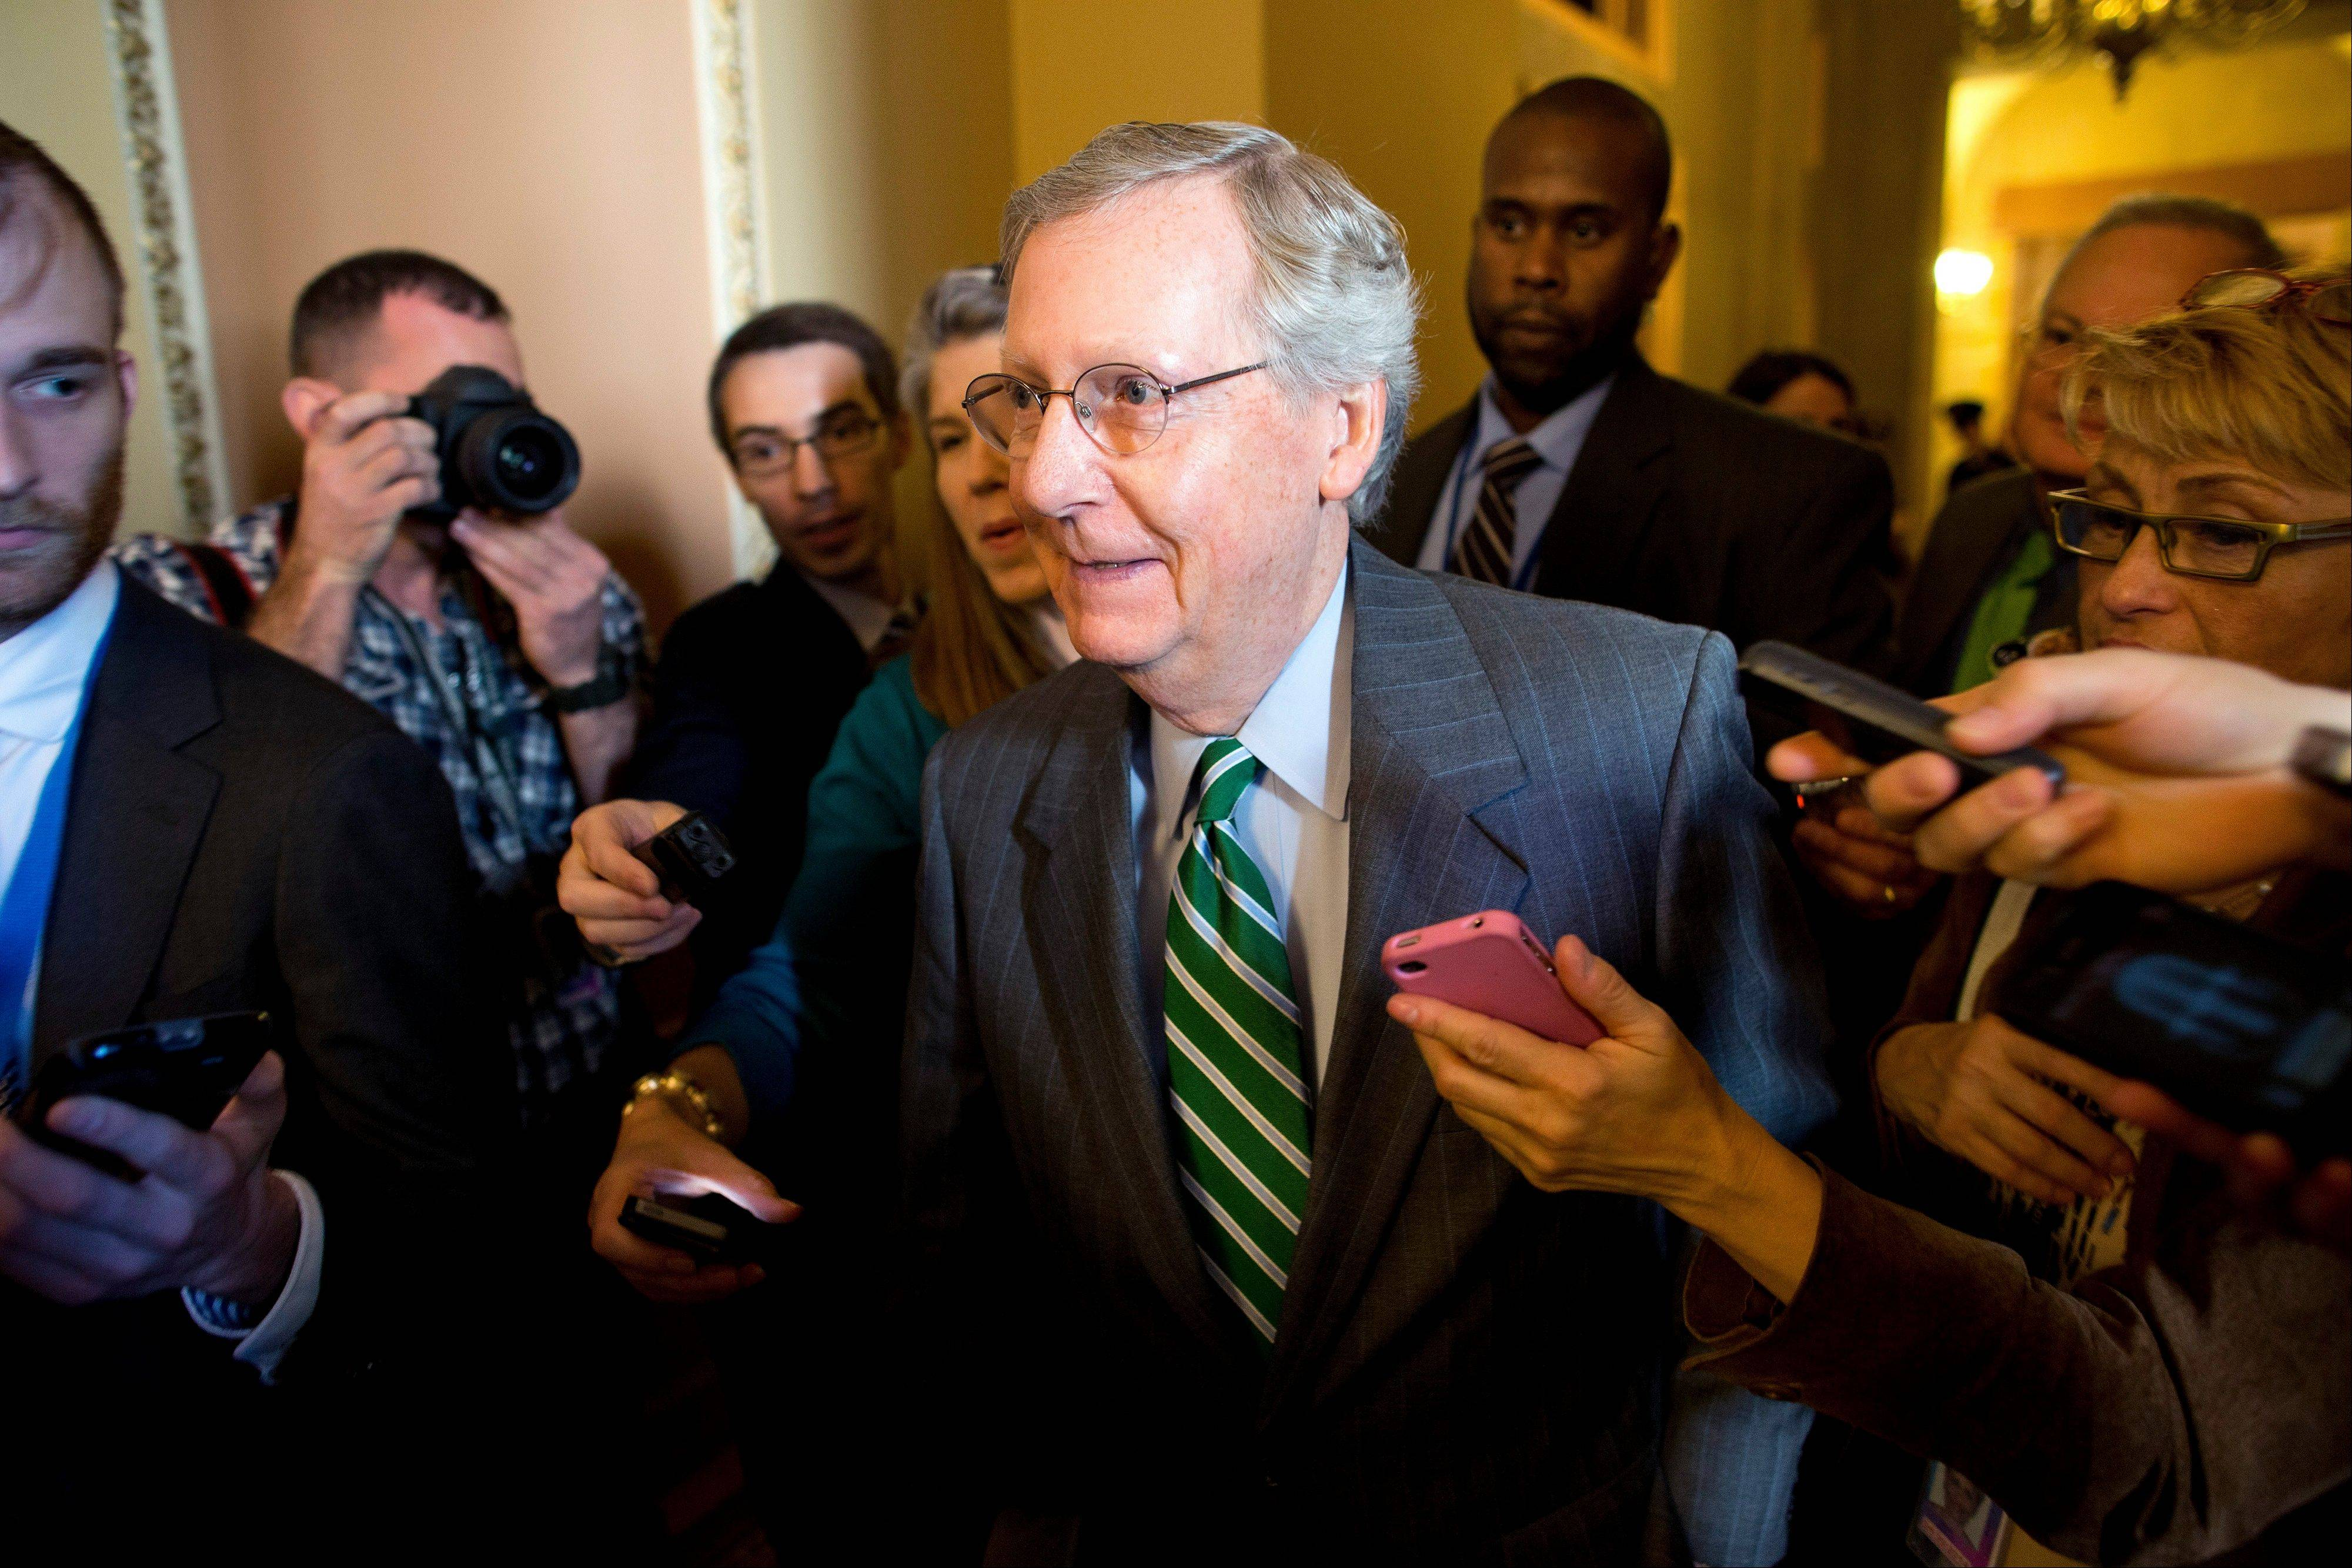 Senate Minority Leader, Republican Mitch McConnell of Kentucky is seen in the Capitol on Oct. 14. Republicans in Congress don't usually fight for tax increases, but GOP senators balked when Democrats proposed delaying a new temporary fee on everyone covered by health insurance.